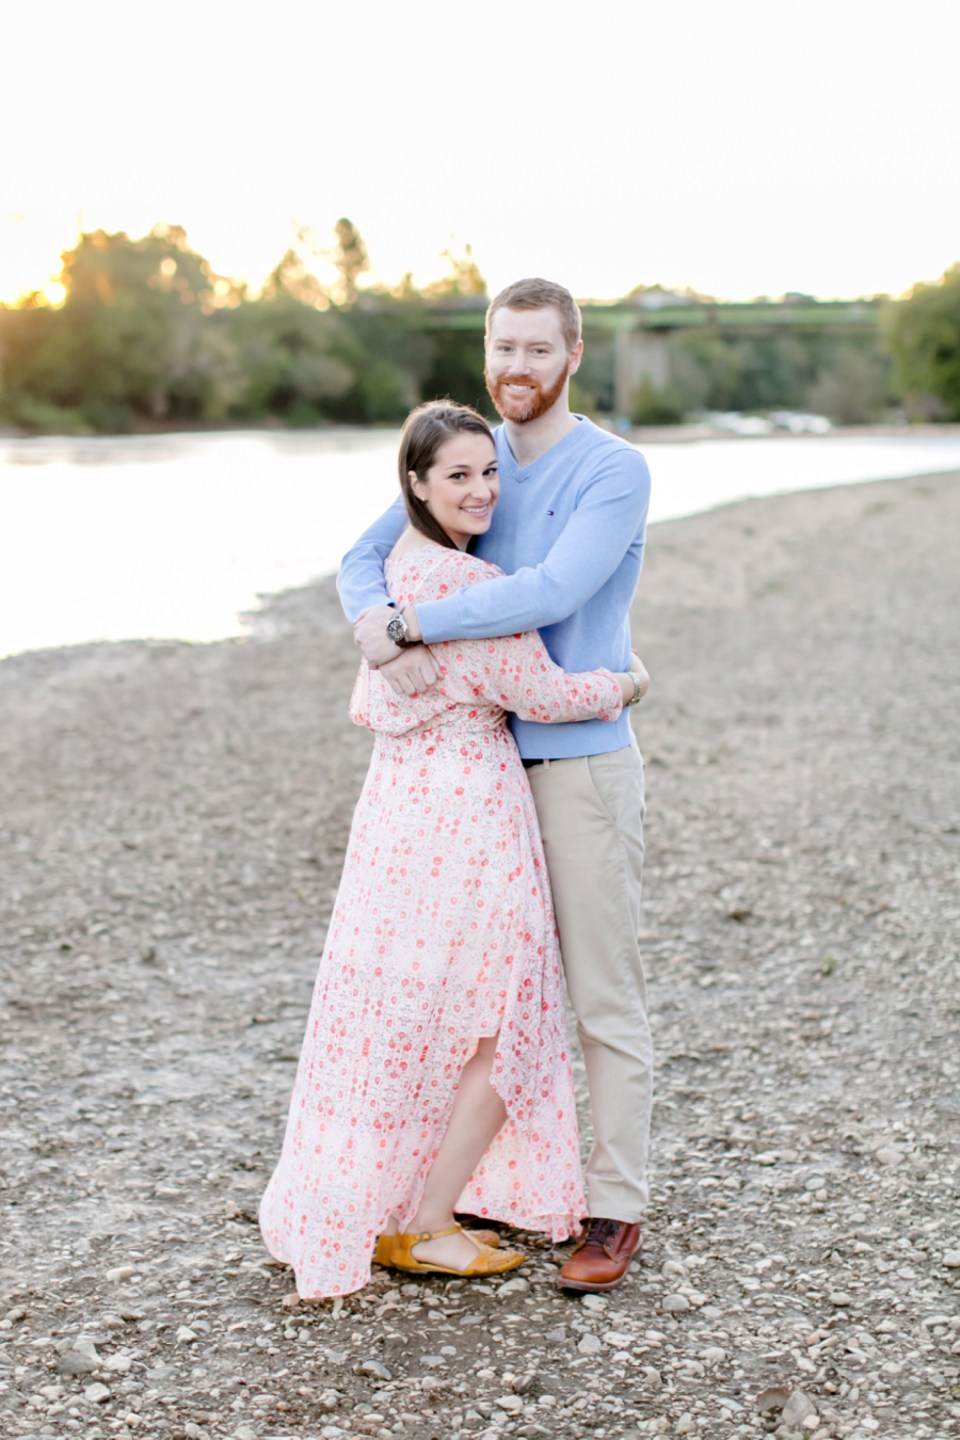 37downtown-fredericksburg-virginia-engagement-session-sarah-and-russell-1073